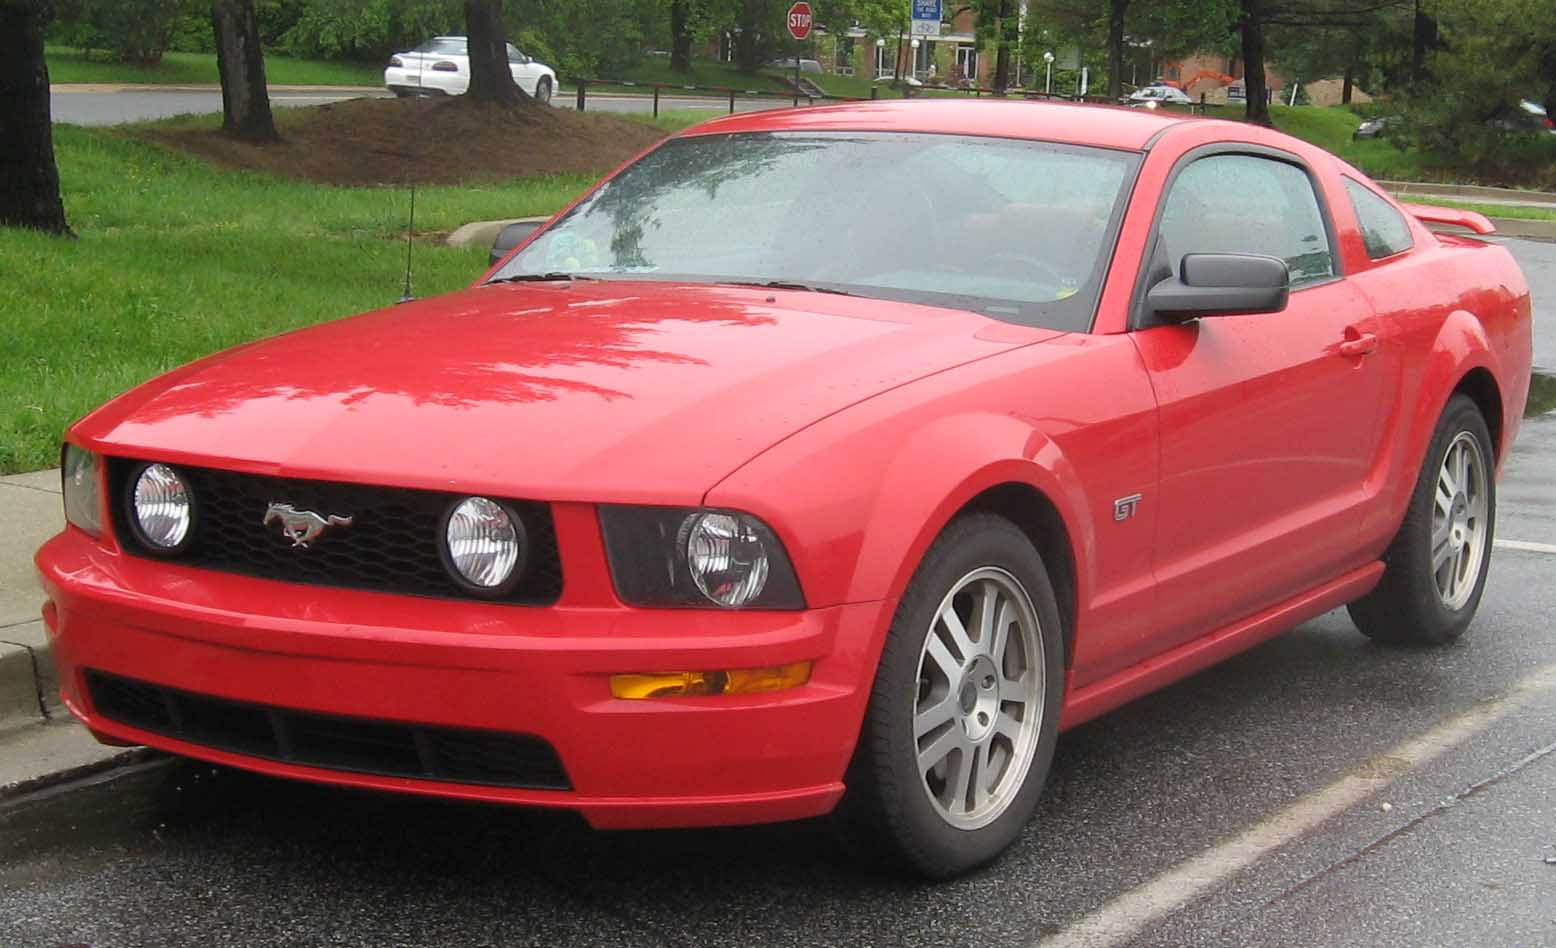 2008 Ford Mustang #1